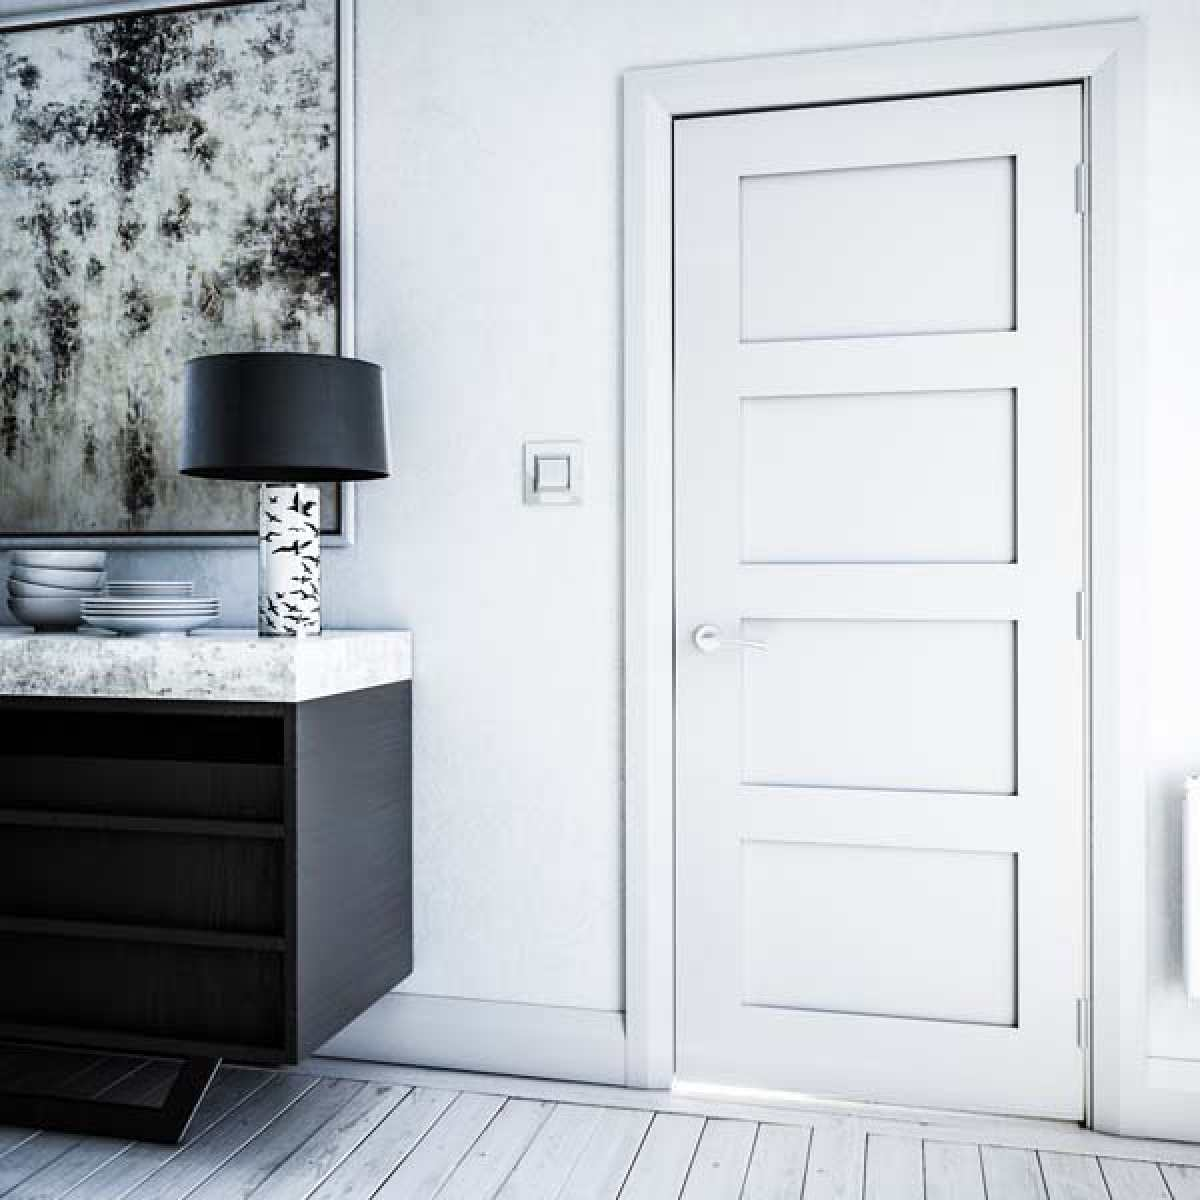 coventry white primed lifestyle websters Image by Websters Timber